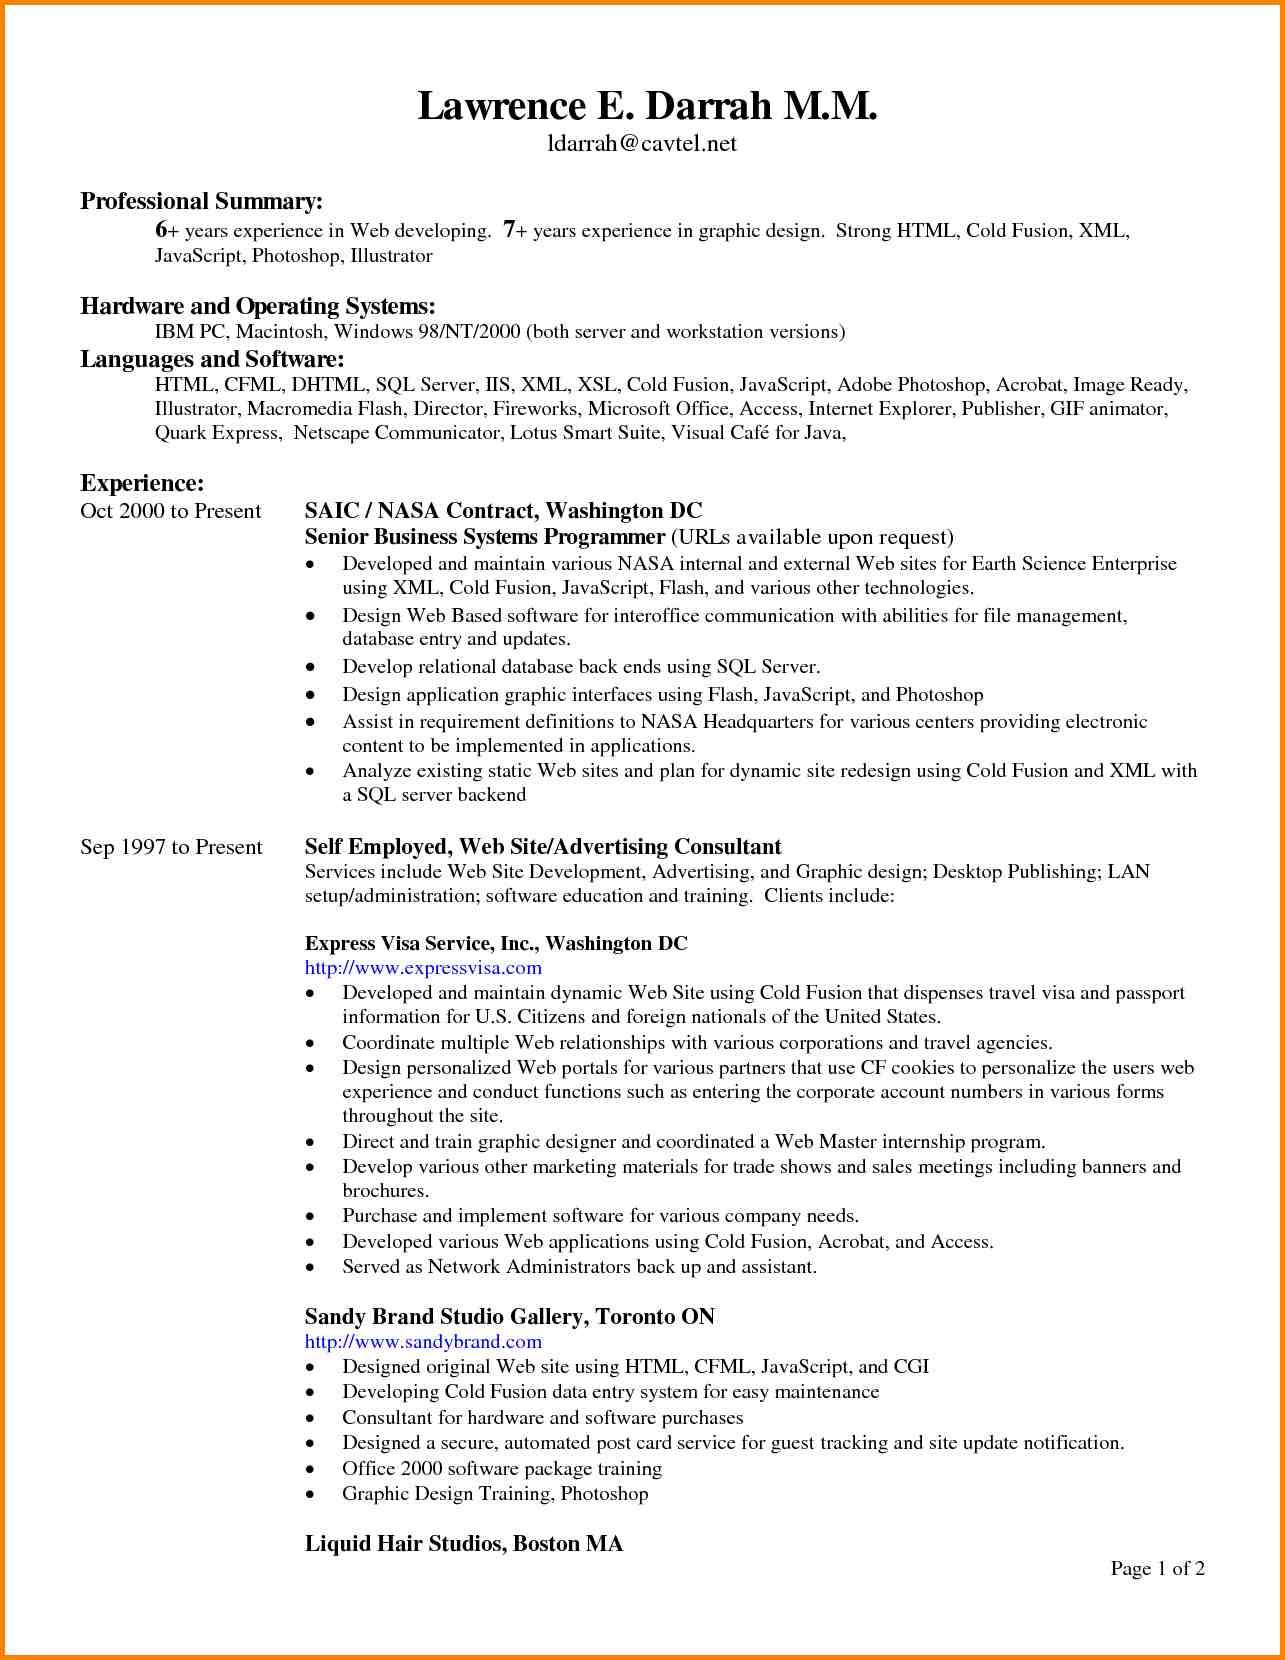 da8e223e659a653a37c52a9c91c5bd89 Resume Format For Freshers Bpo on one page, electrical engineering, teacher word, business administration, diploma engineer,